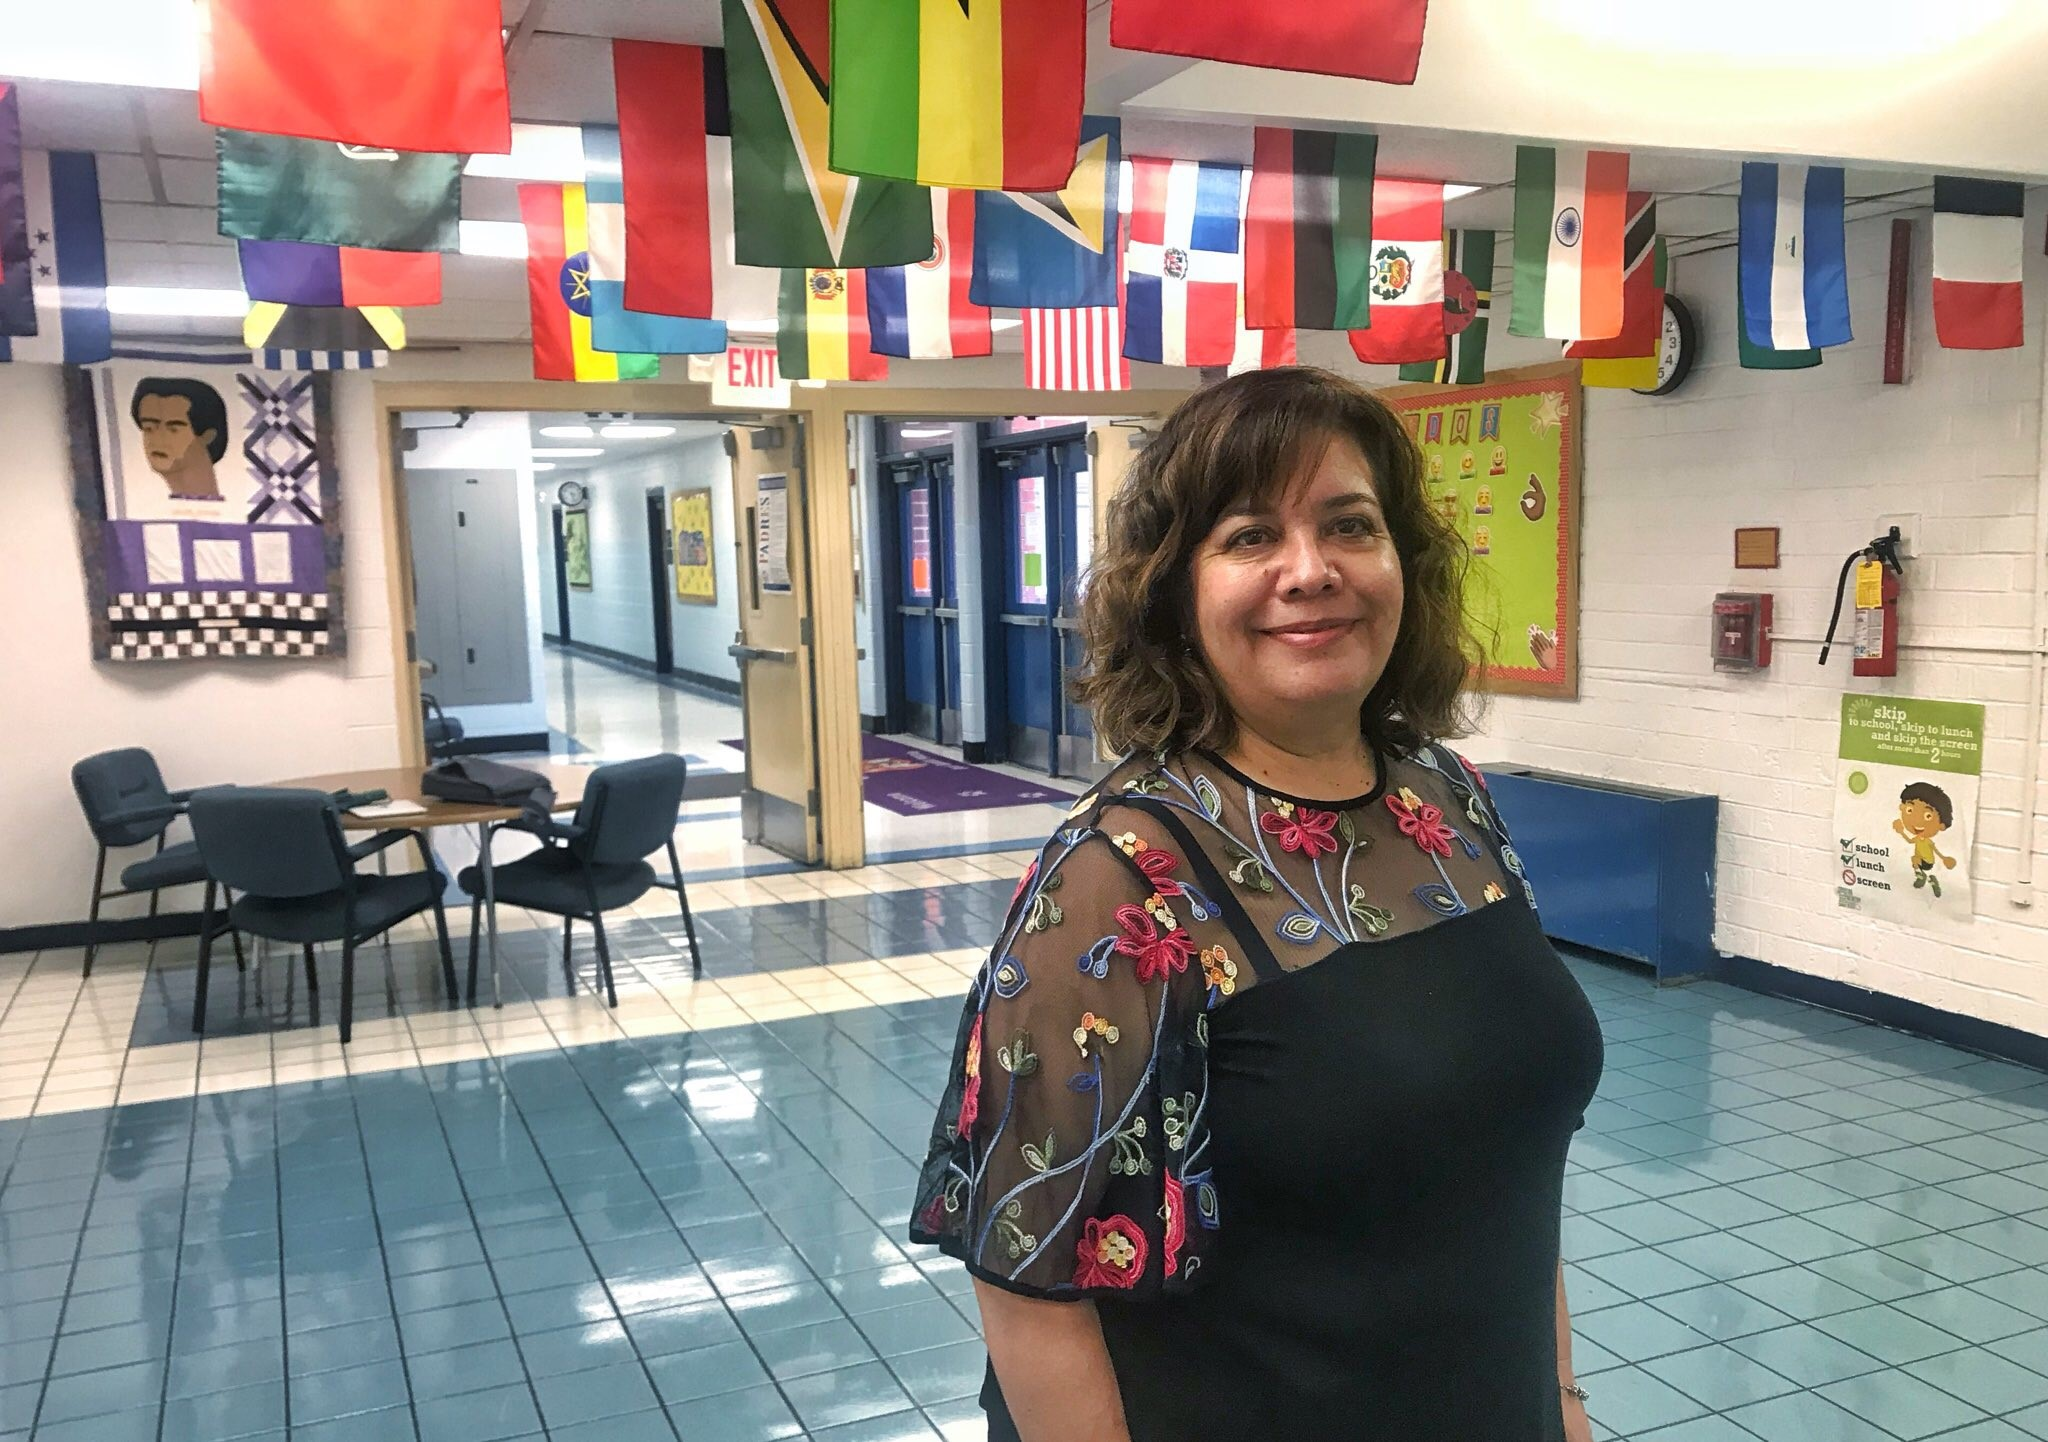 Celebrating Hispanic Heritage: César Chávez Dual Spanish Immersion School Principal Dr. Anna Santiago Addis is in her seventh year as an administrator and second year with Prince George's County Public Schools (PGCPS). Prior to joining PGCPS, she was a middle school principal in New Mexico.